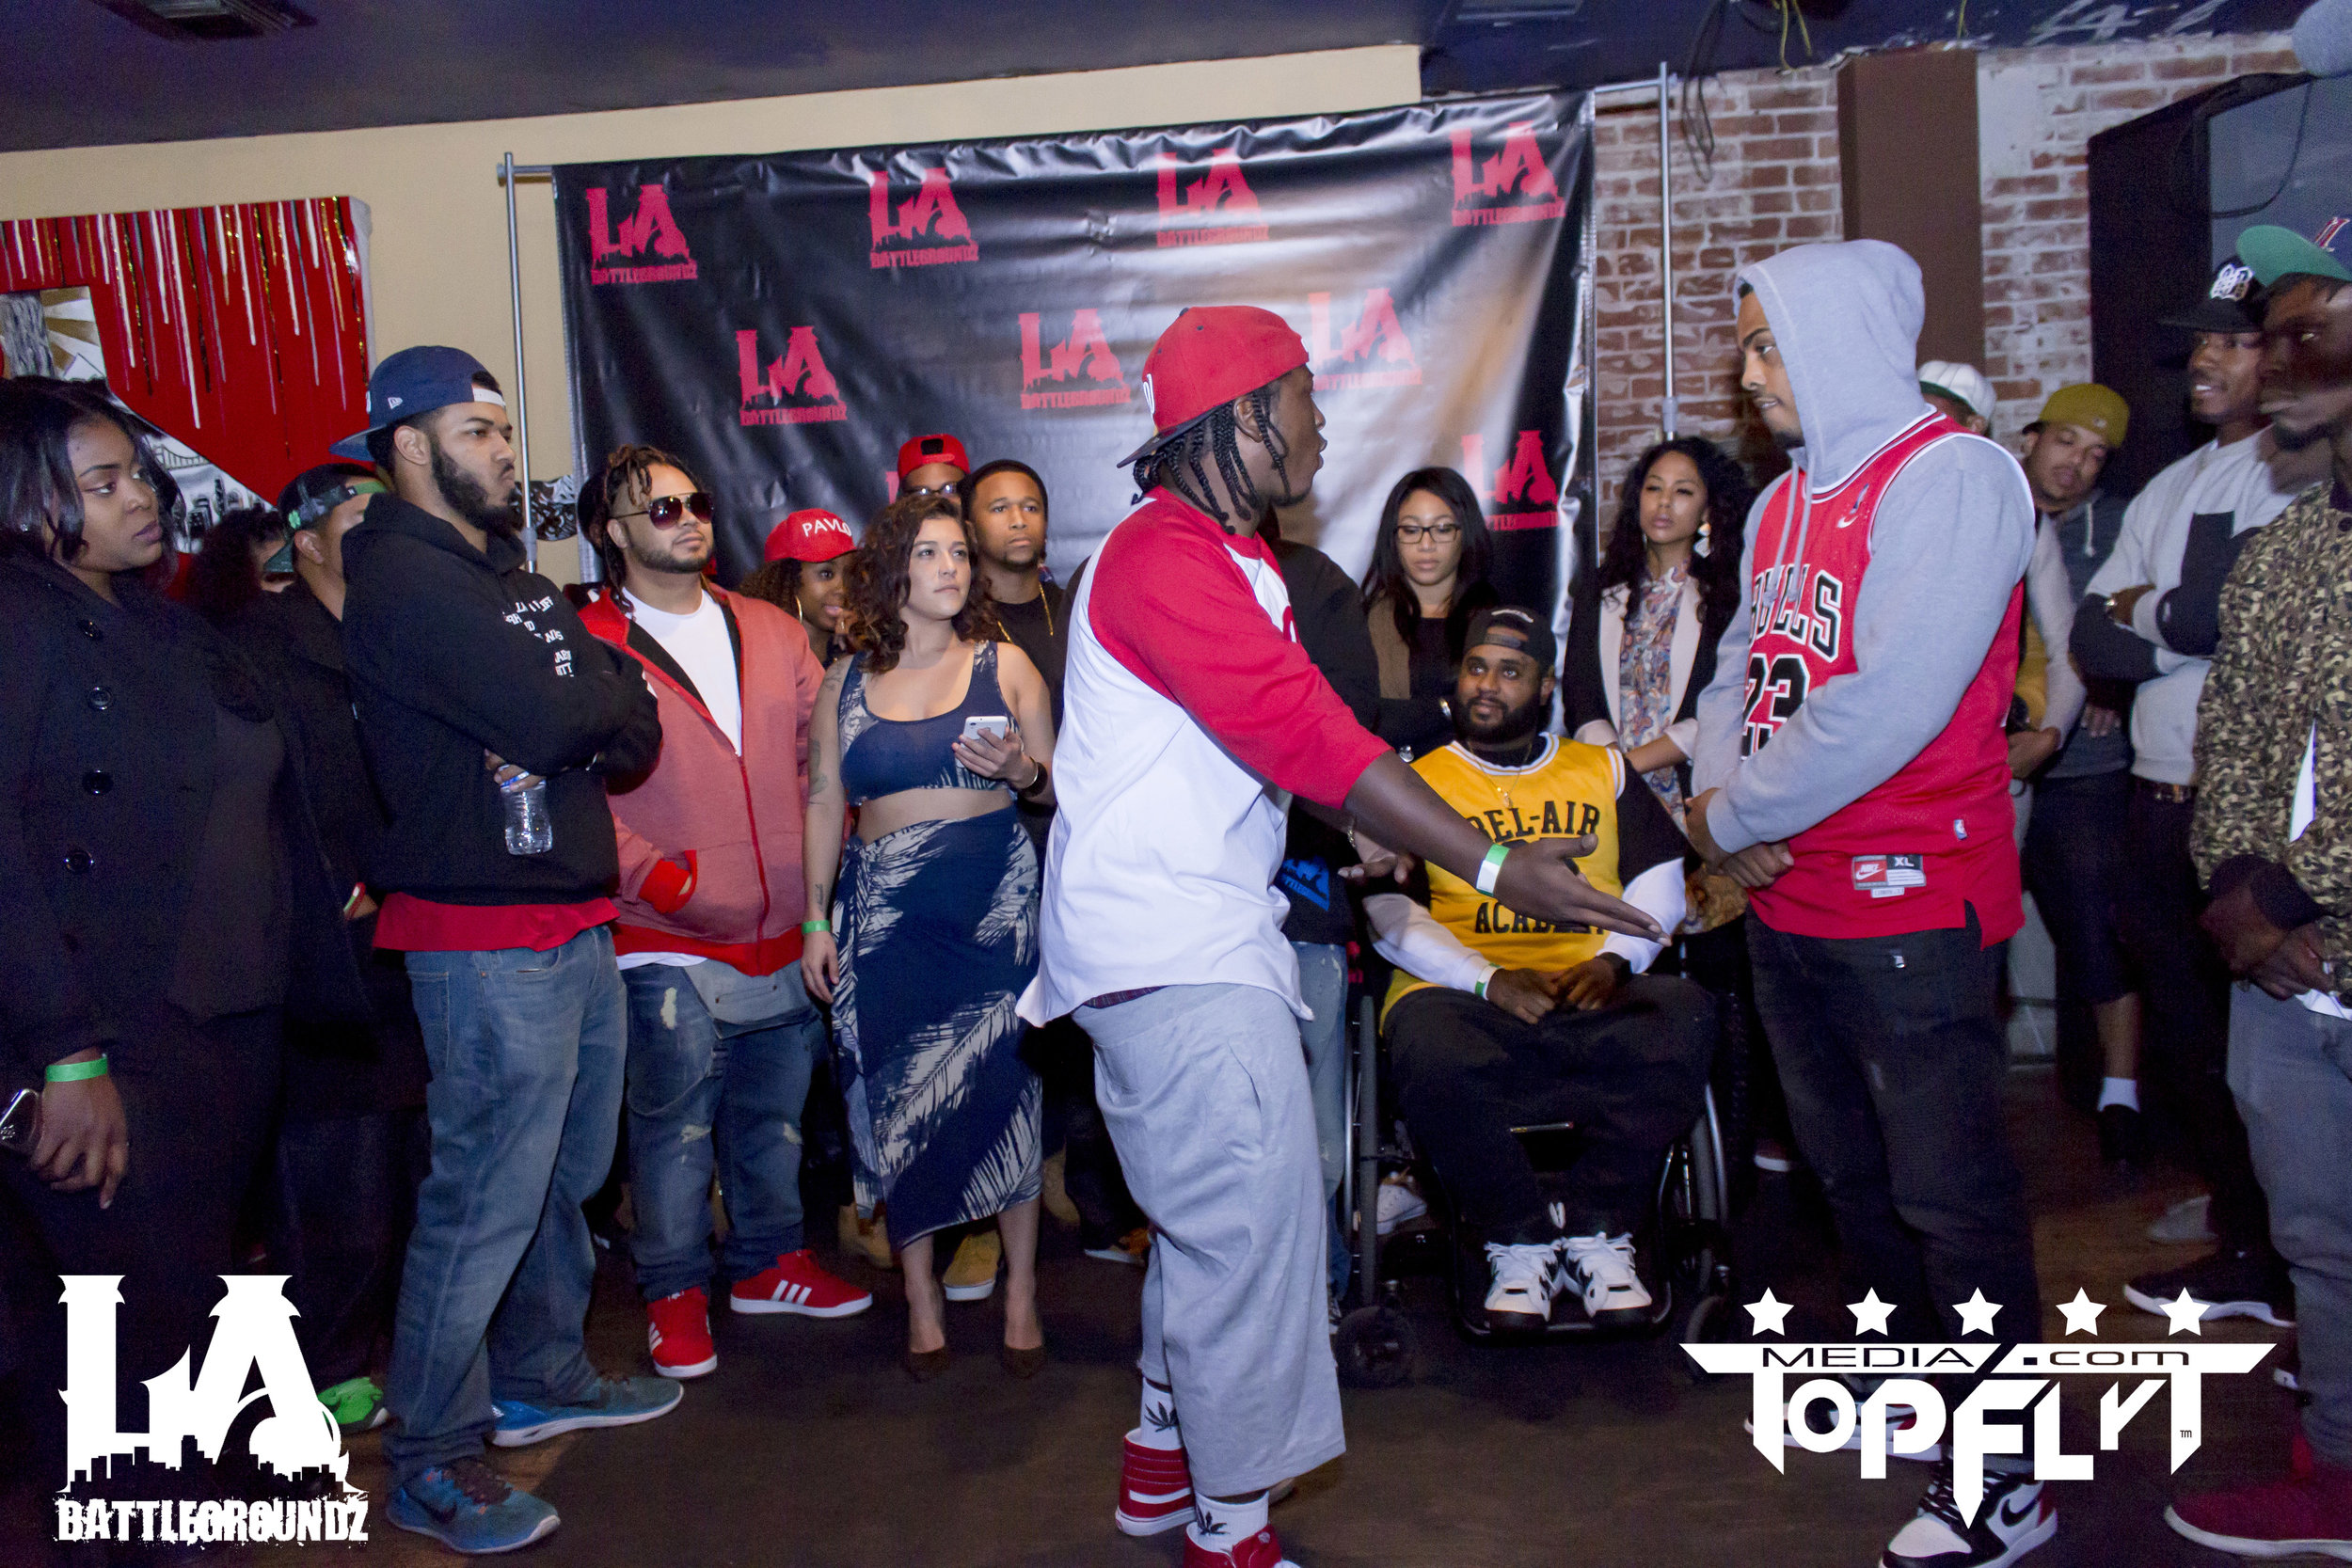 LA Battlegroundz - Decembarfest - The Christening_31.jpg